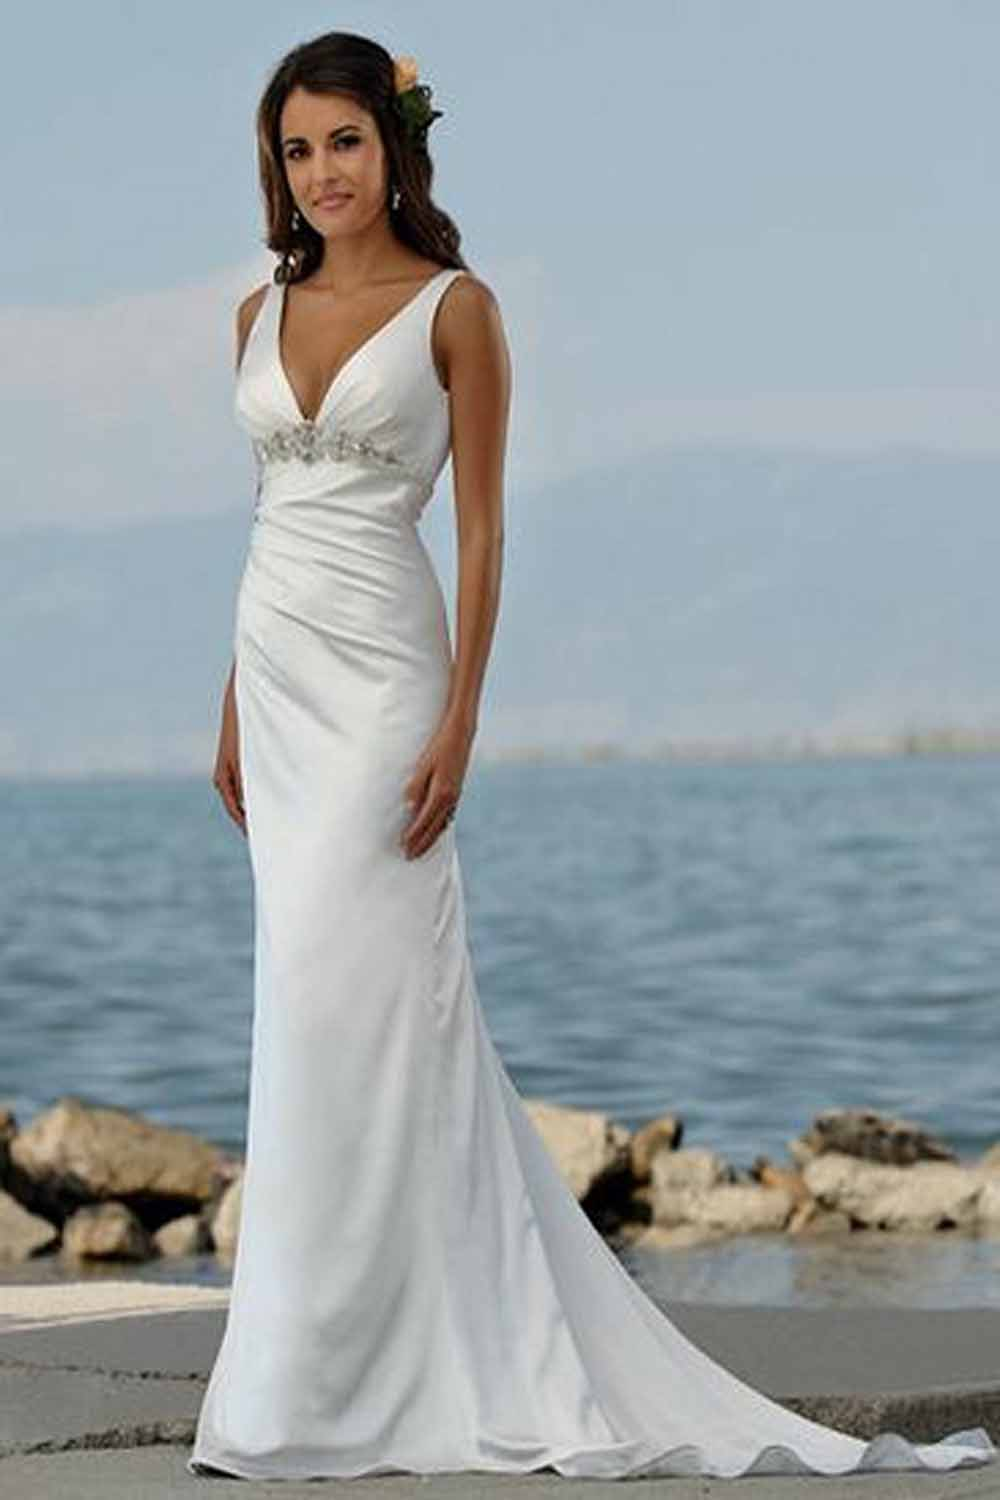 summer beach wedding dresses 2012 summer beach wedding